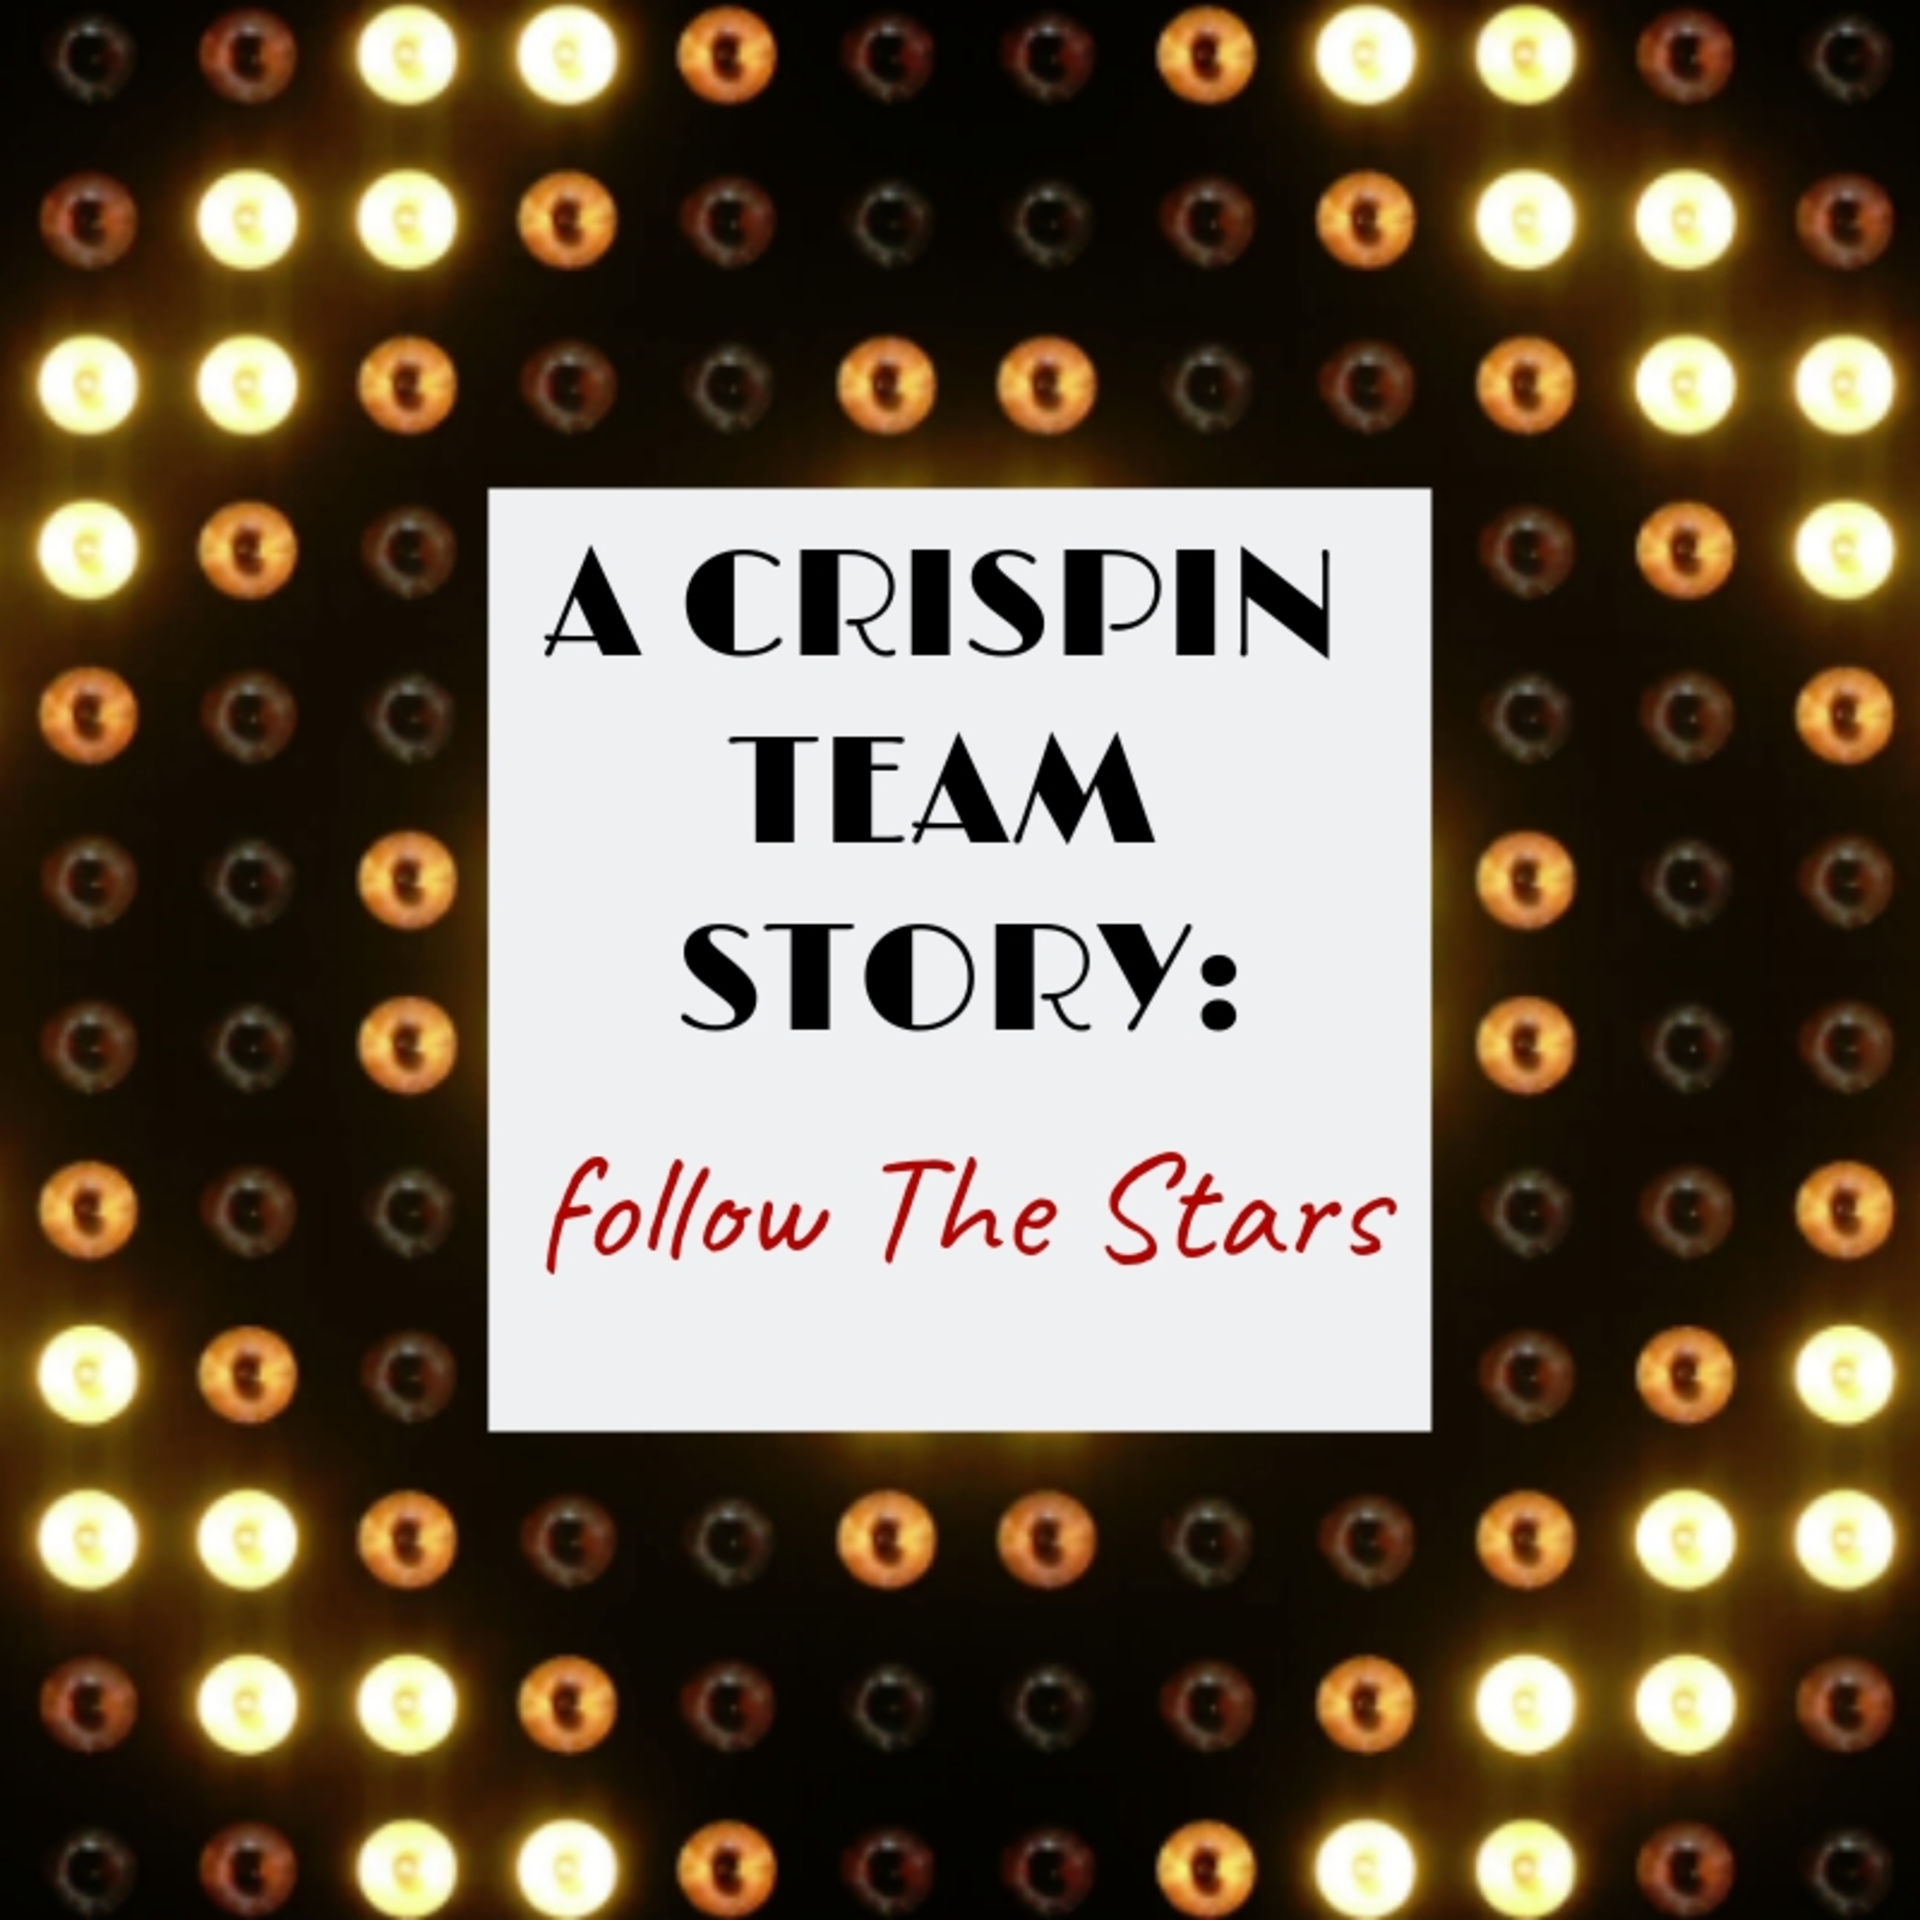 Follow the Stars: A Crispin Team Story